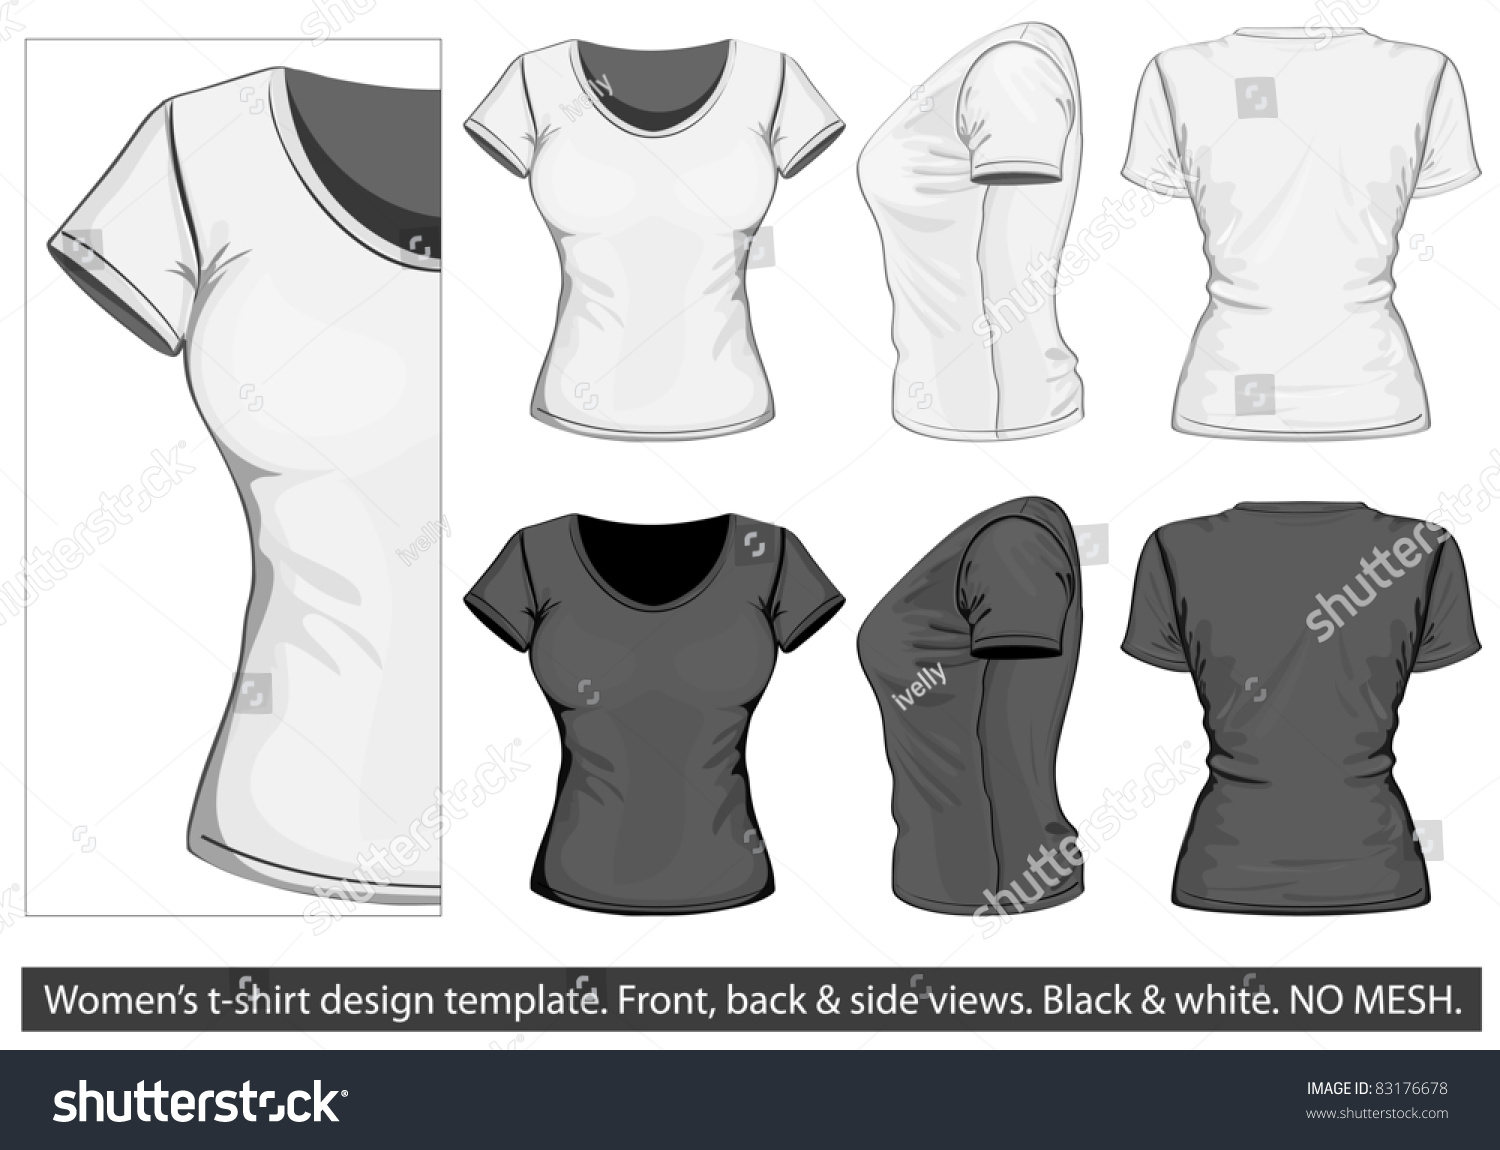 vector womens tshirt design template front stock vector 83176678 shutterstock. Black Bedroom Furniture Sets. Home Design Ideas